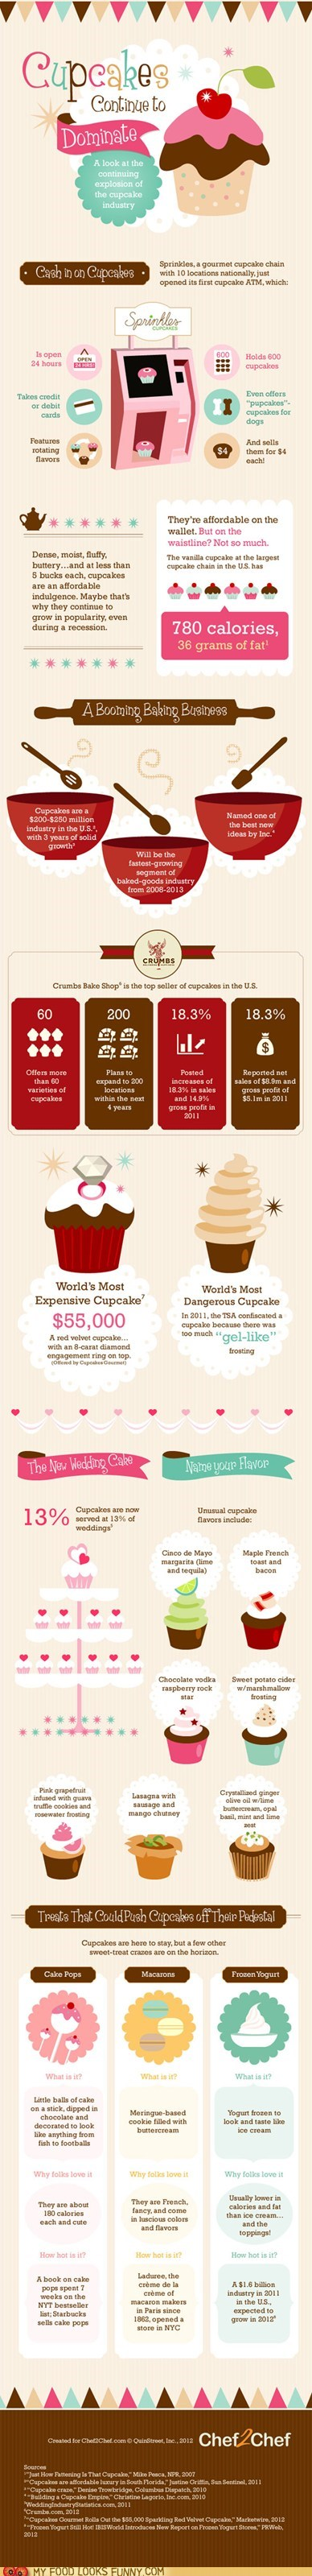 cupcakes,info,infographic,trends